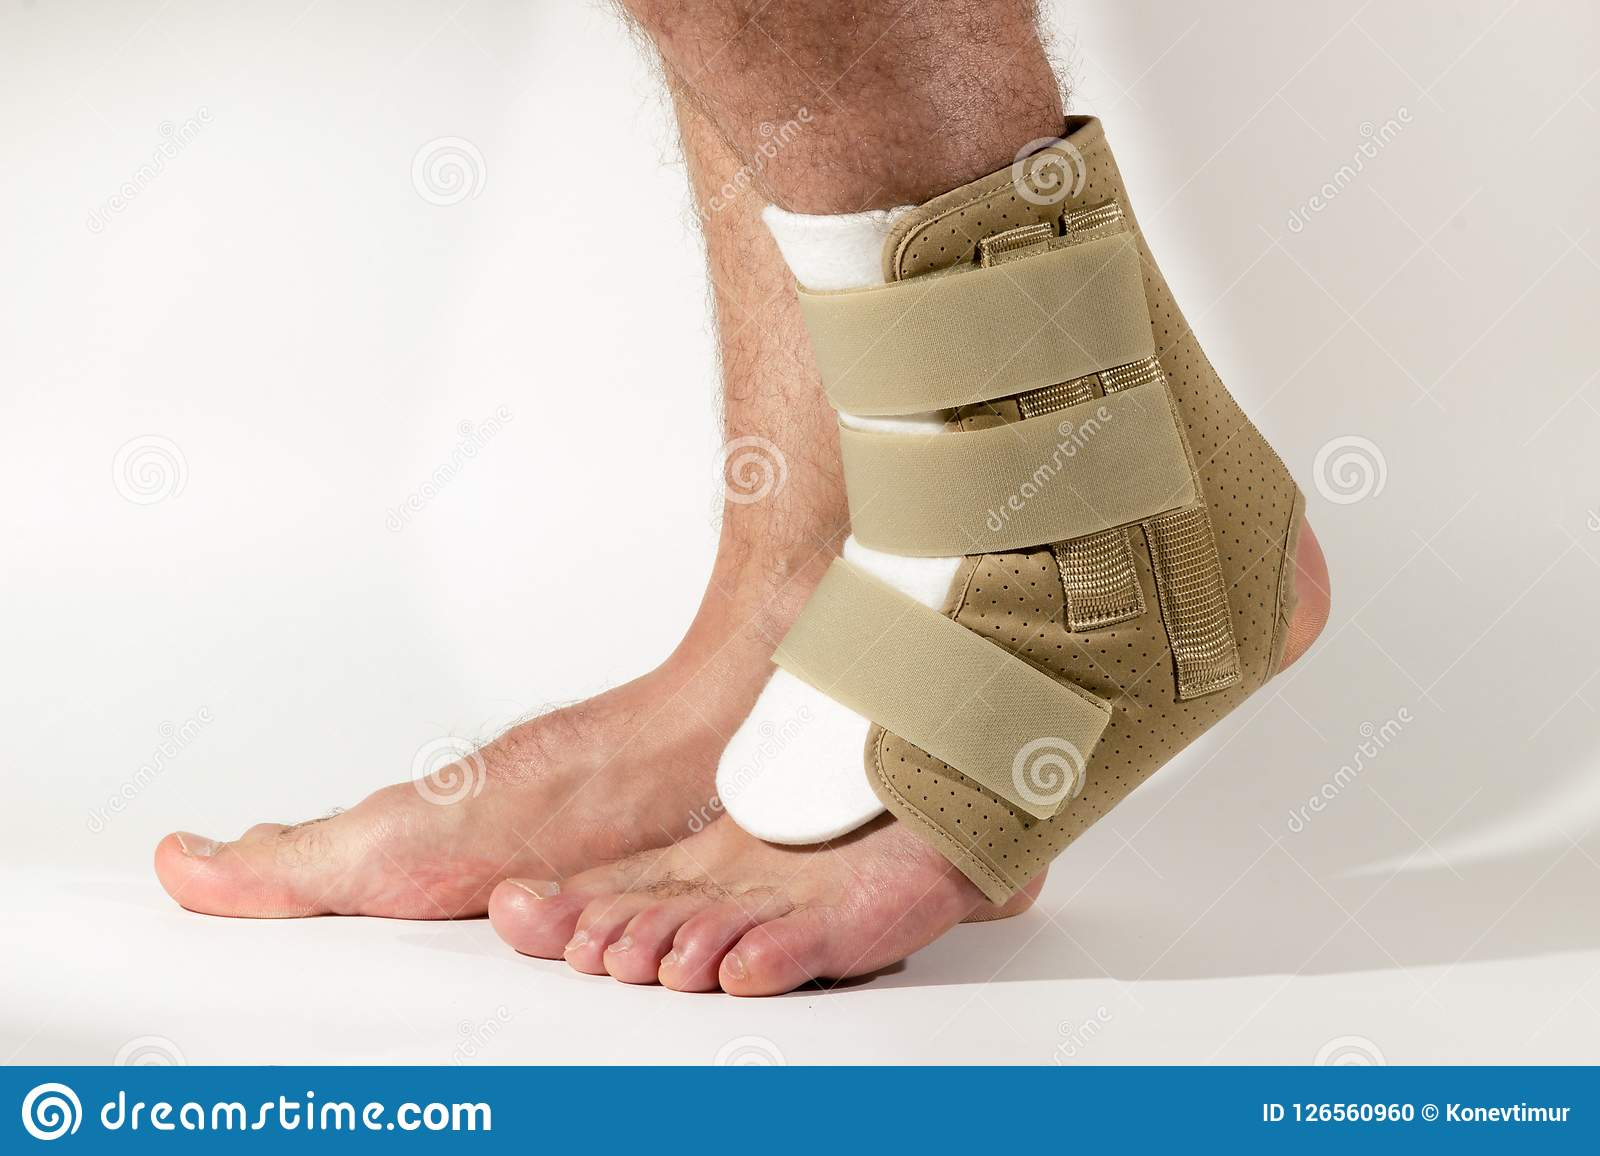 Injury of leg, sprain of ligaments. Bandage on the foot. The con